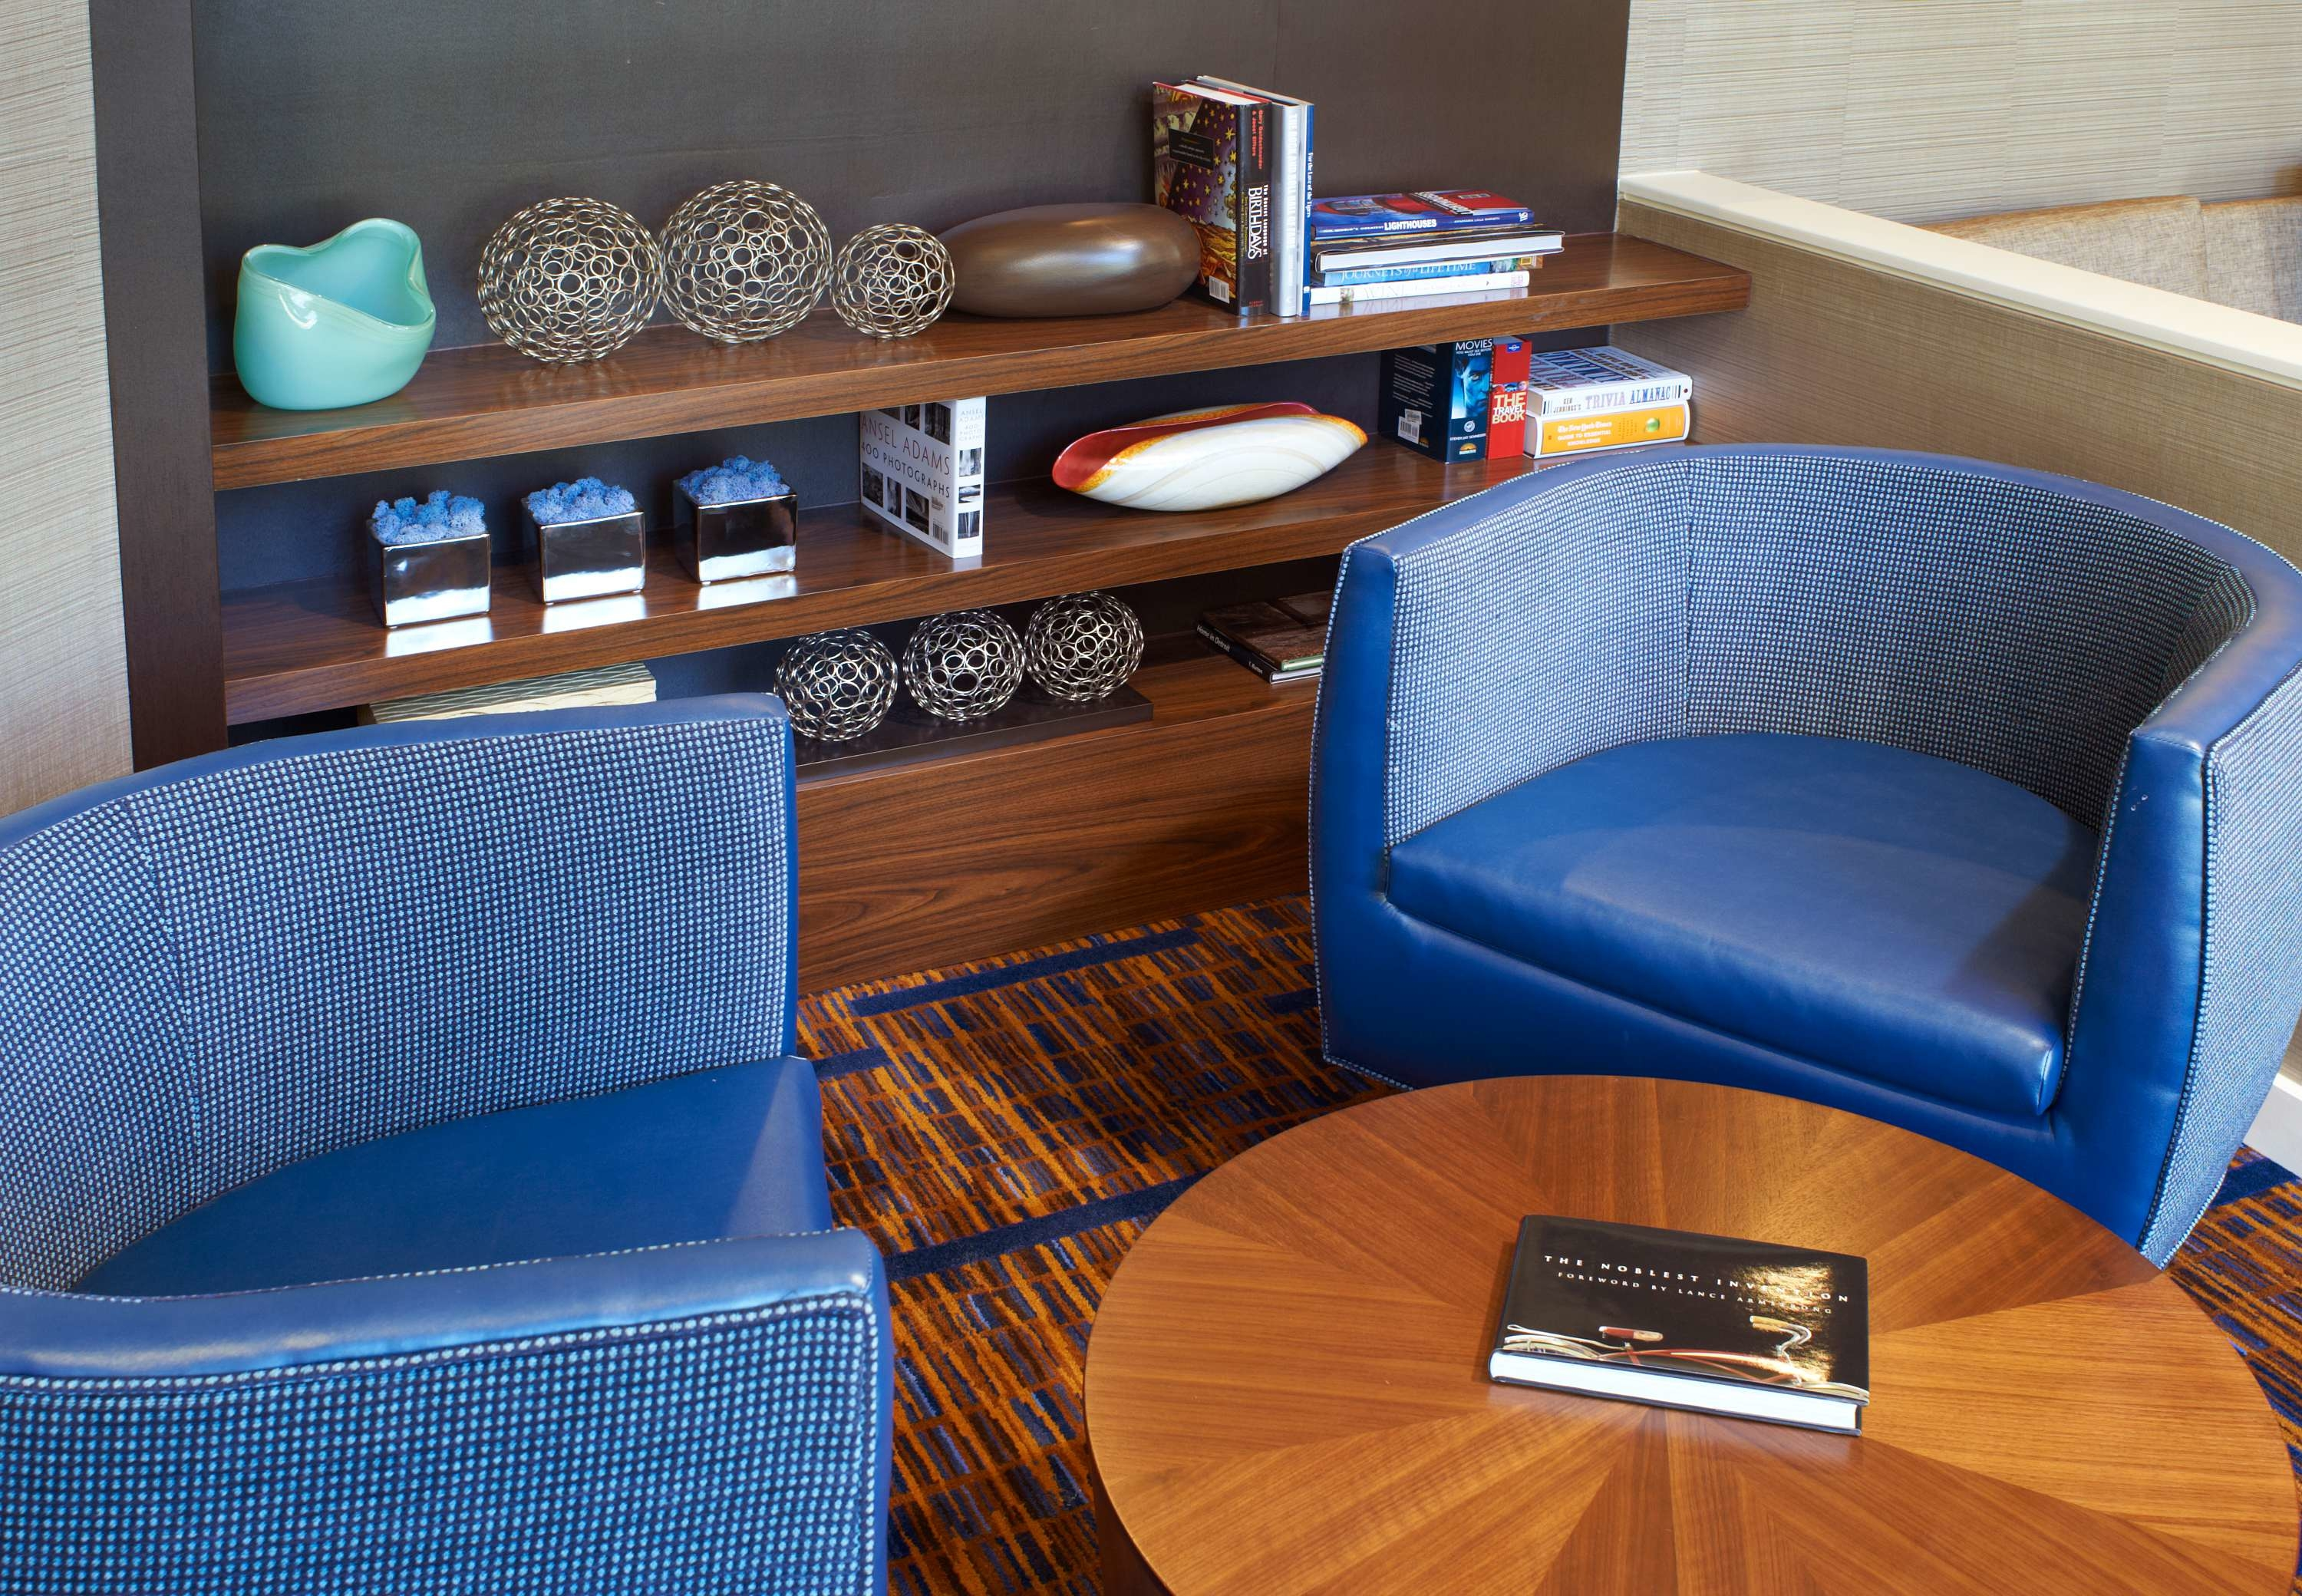 Courtyard by Marriott Detroit Dearborn image 31